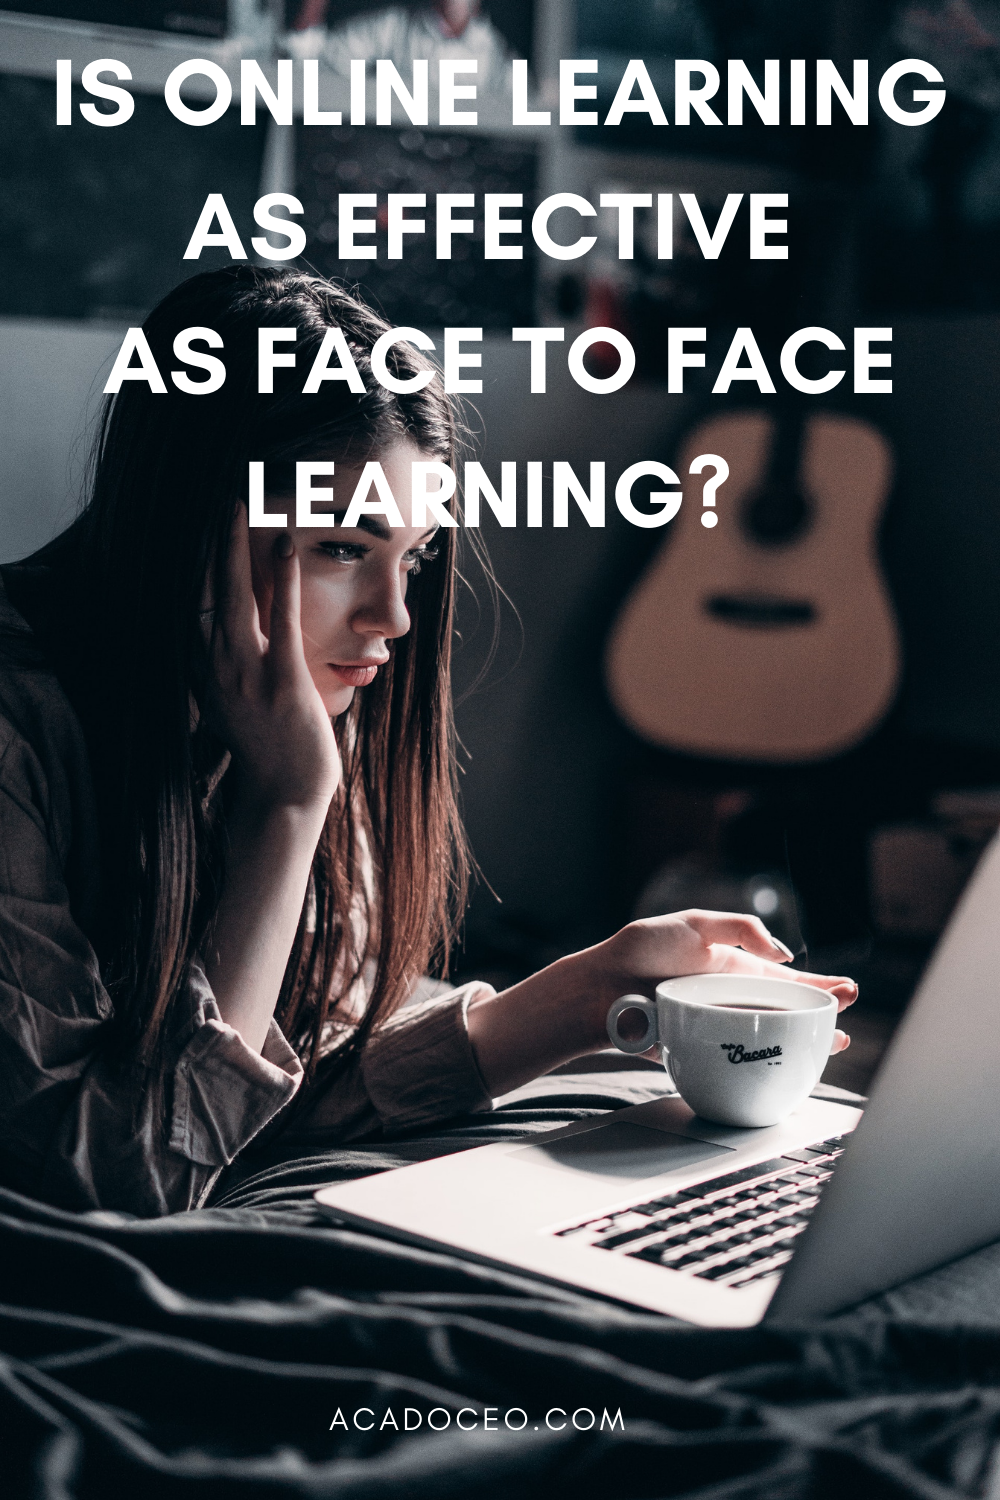 IS ONLINE LEARNING AS EFFECTIVE AS FACE TO FACE LEARNING